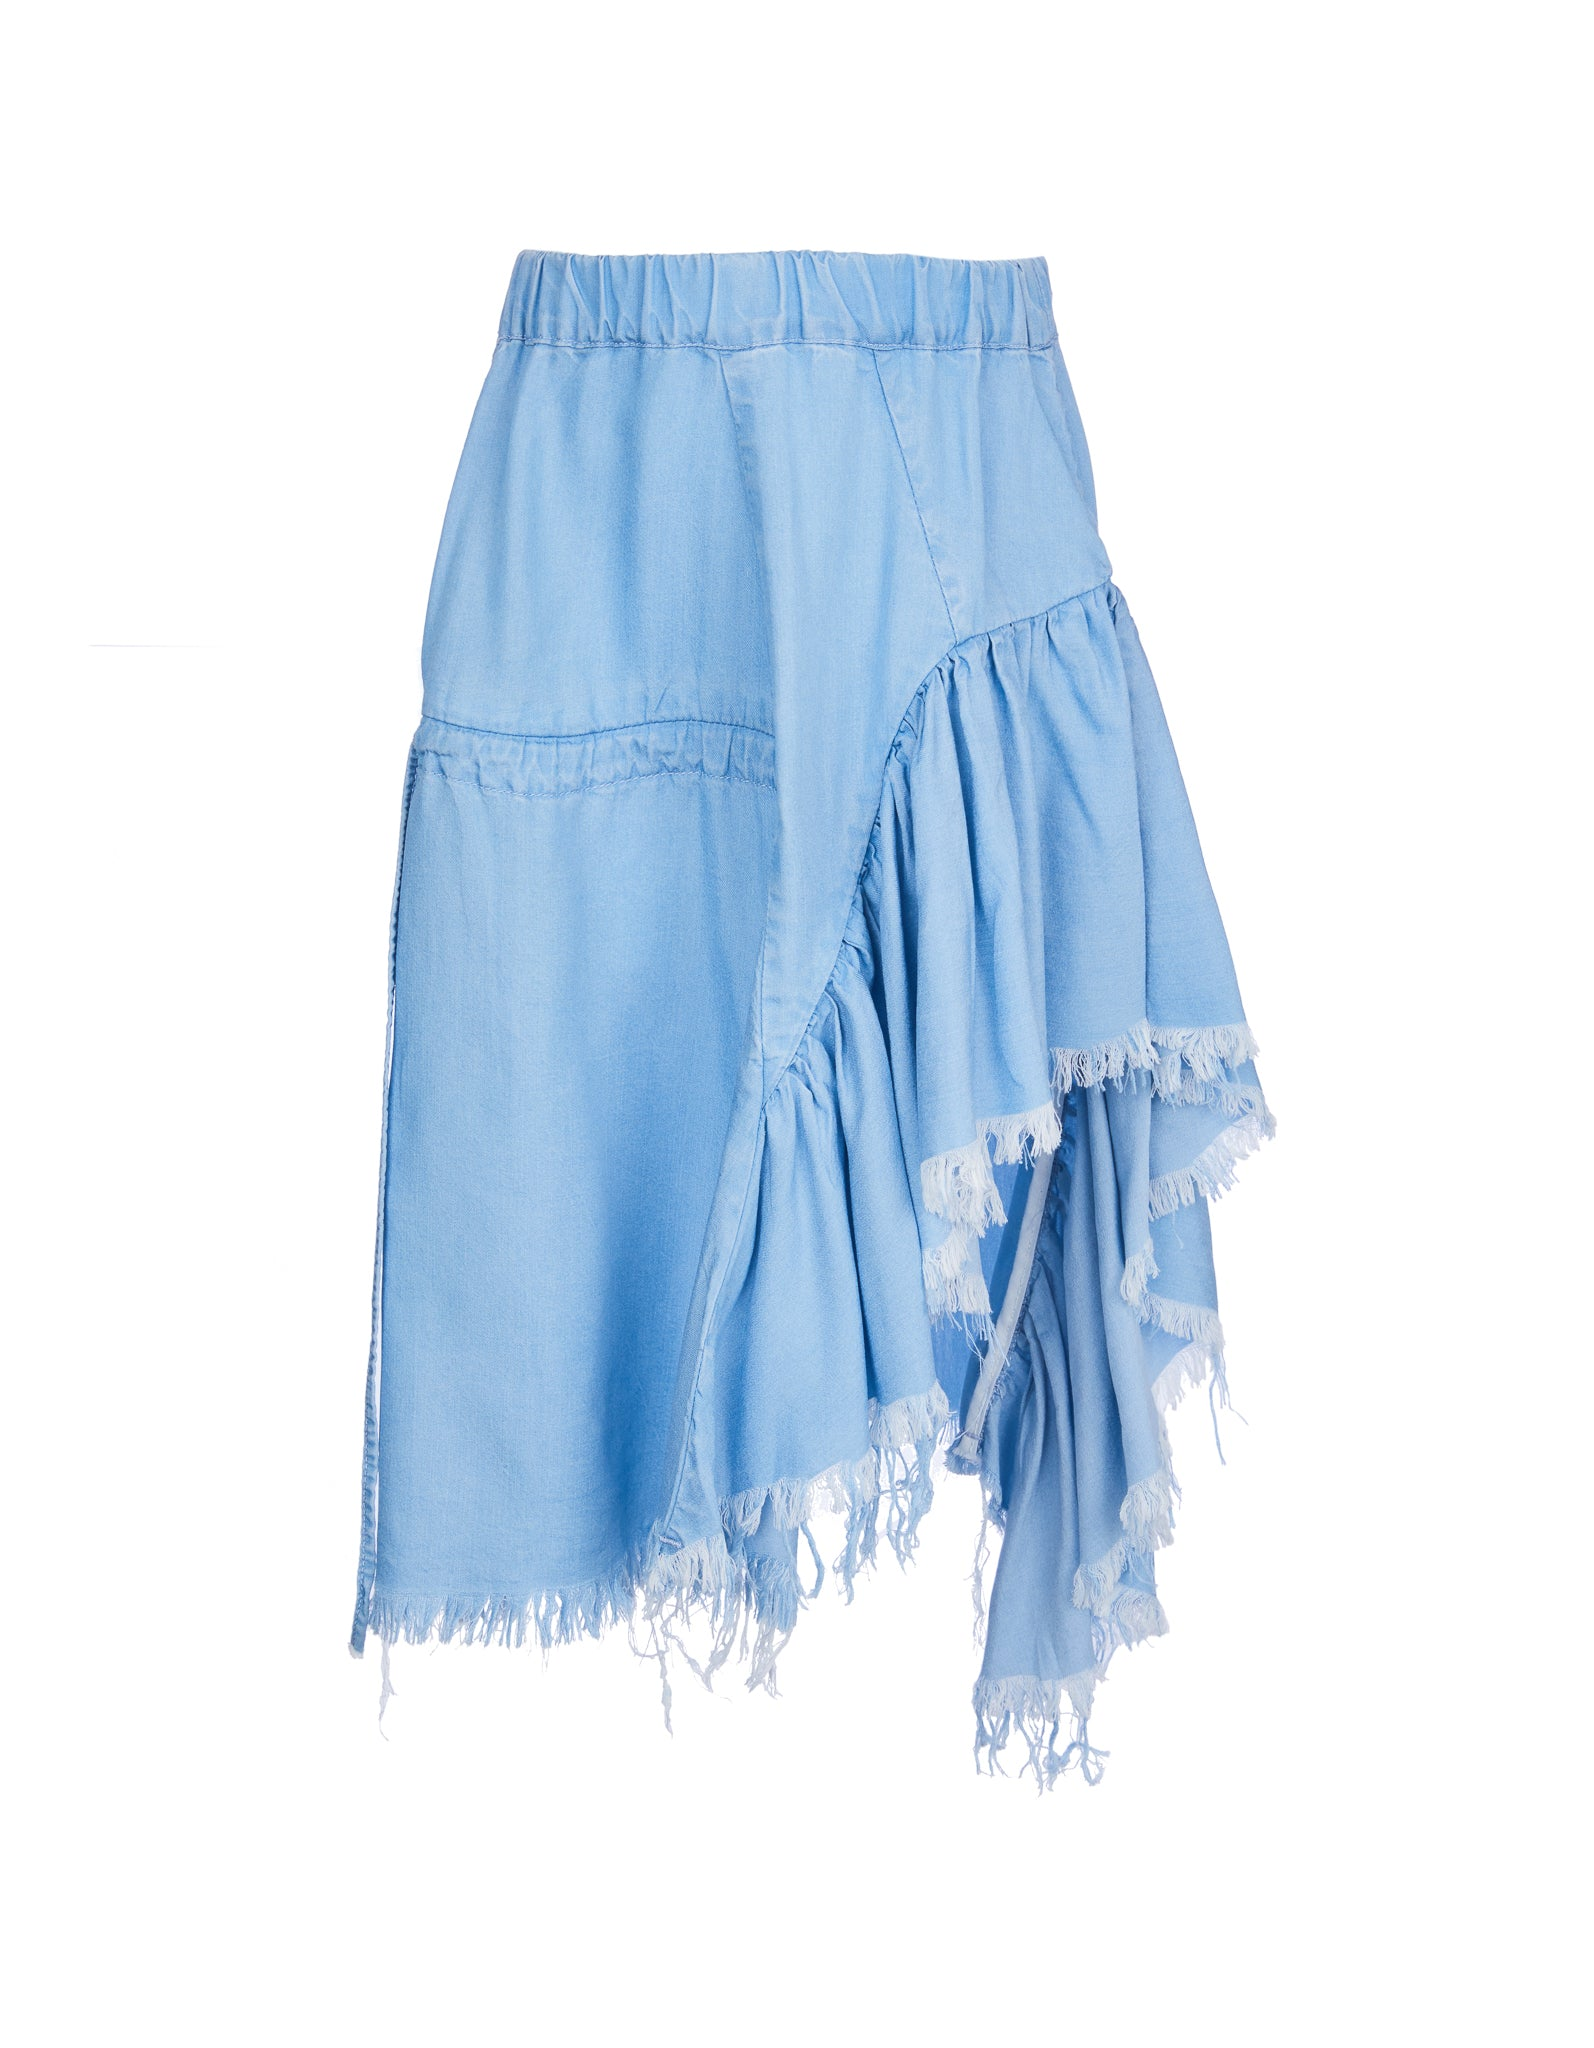 M'A KIDS GATHERED SKIRT IN BABY BLUE